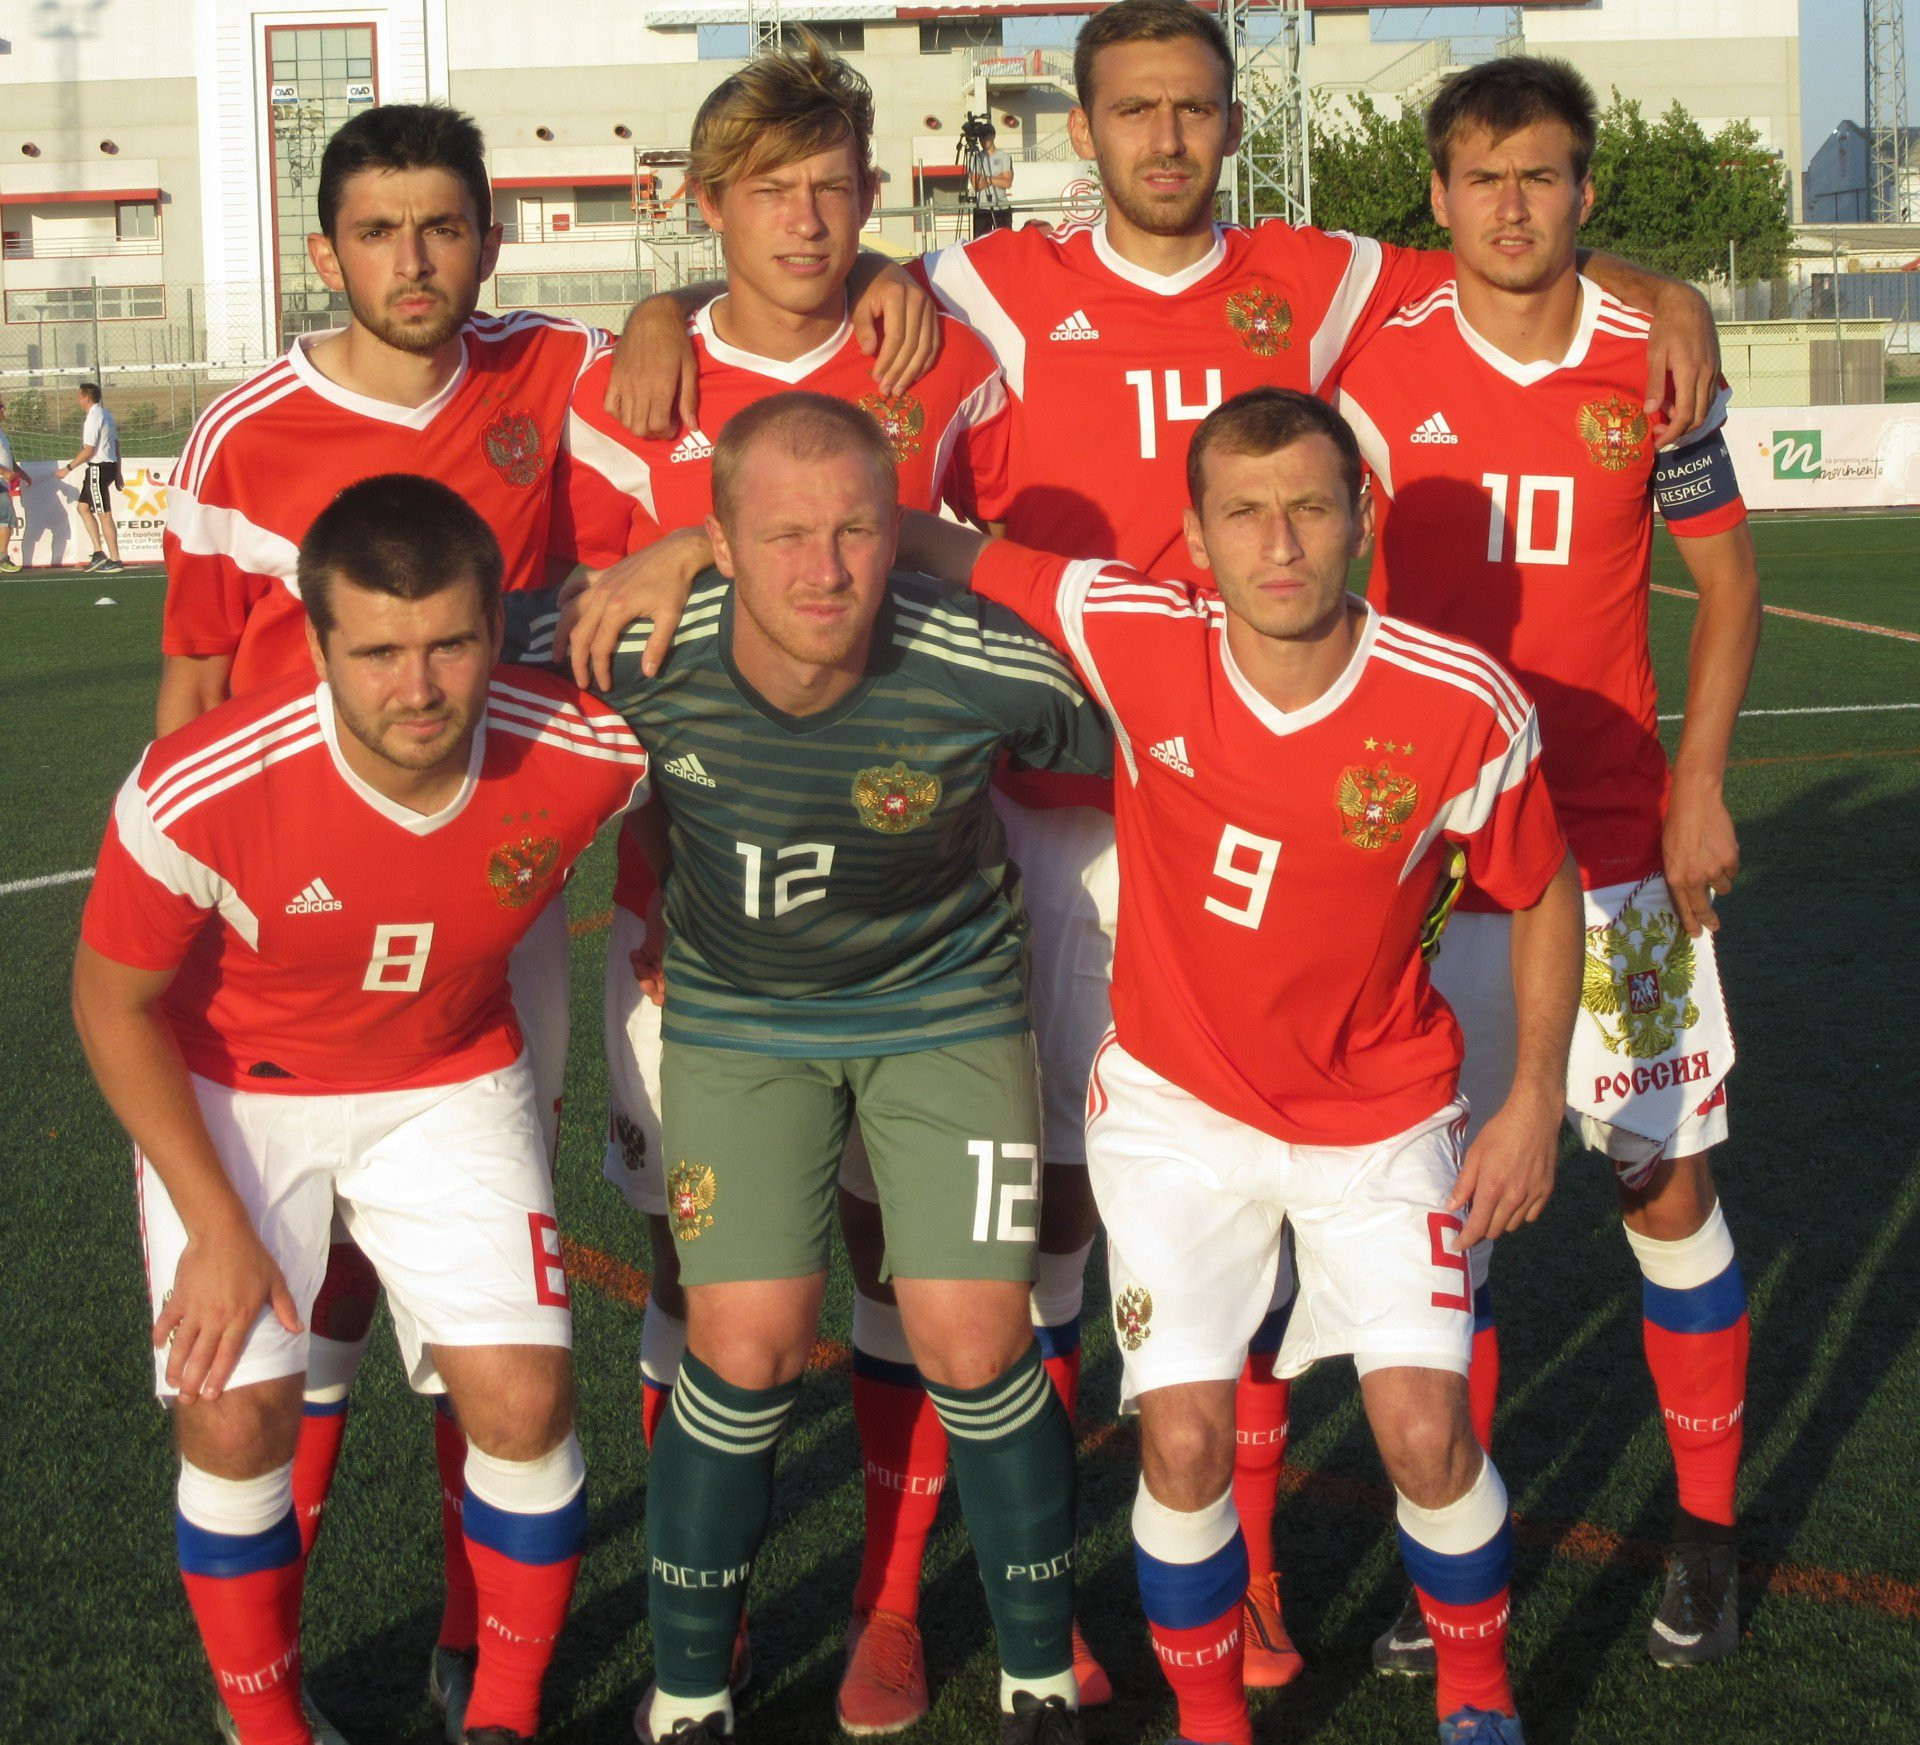 Russia sealed their place in the final with a win over England ©IFCPF/Twitter